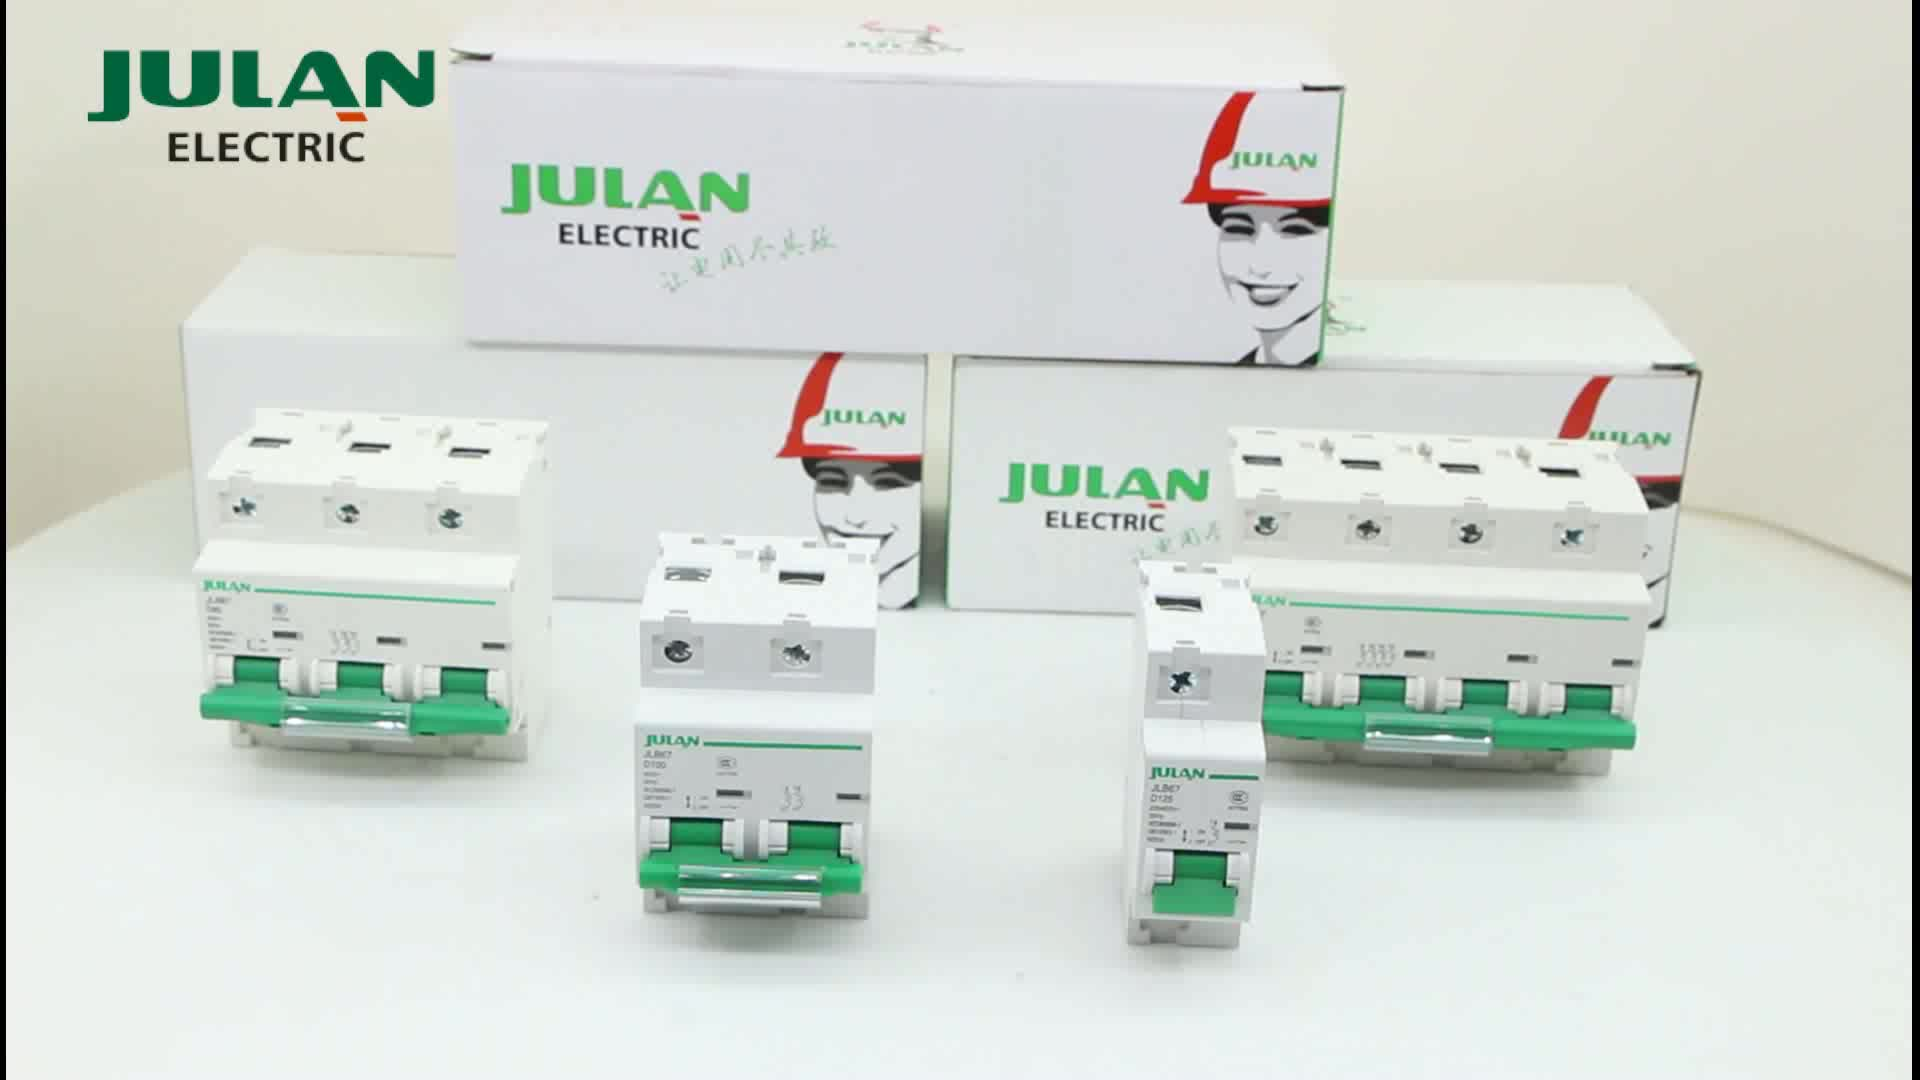 Julan Customizable 2p 6 63a Residual Current Circuit Breaker Rccb How Does A Work